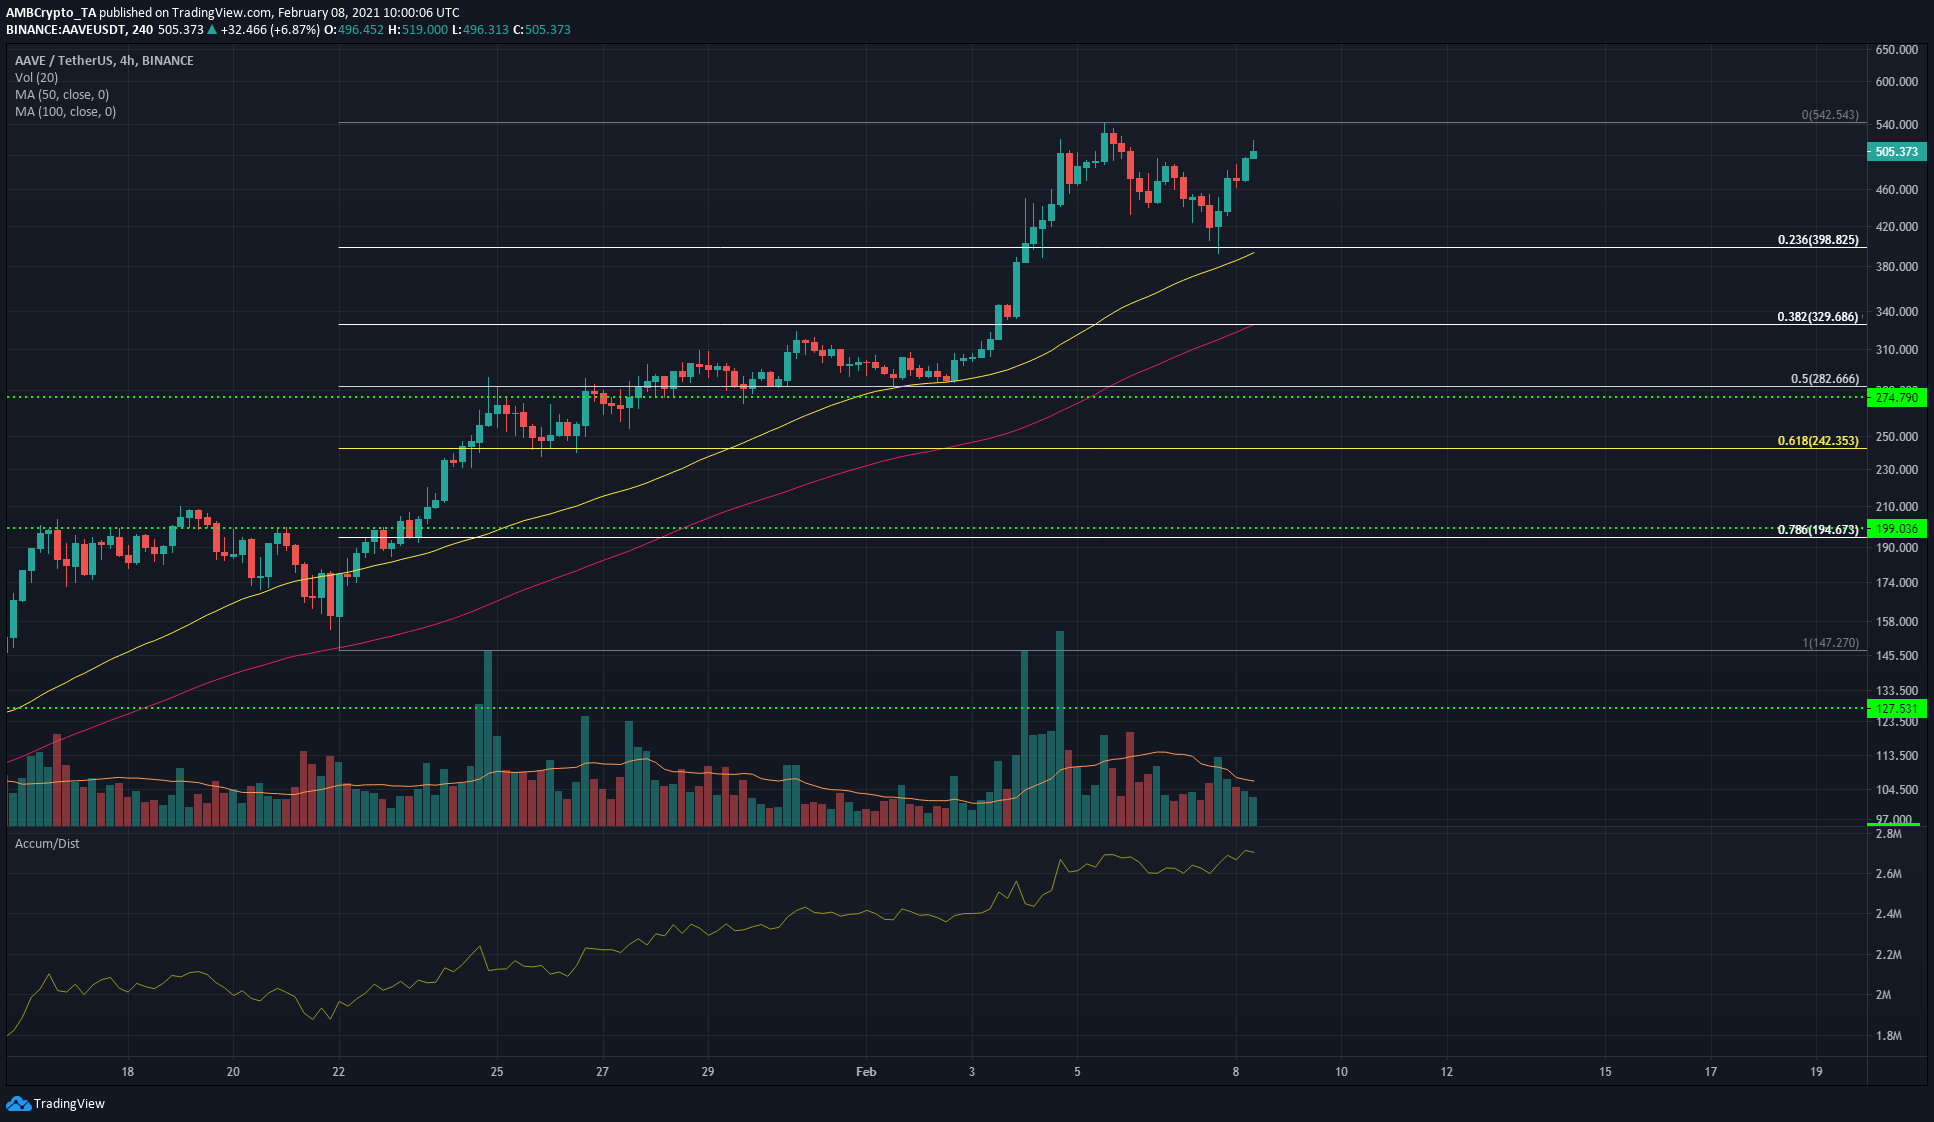 Chainlink, Aave, Elrond Price Analysis: 08 February